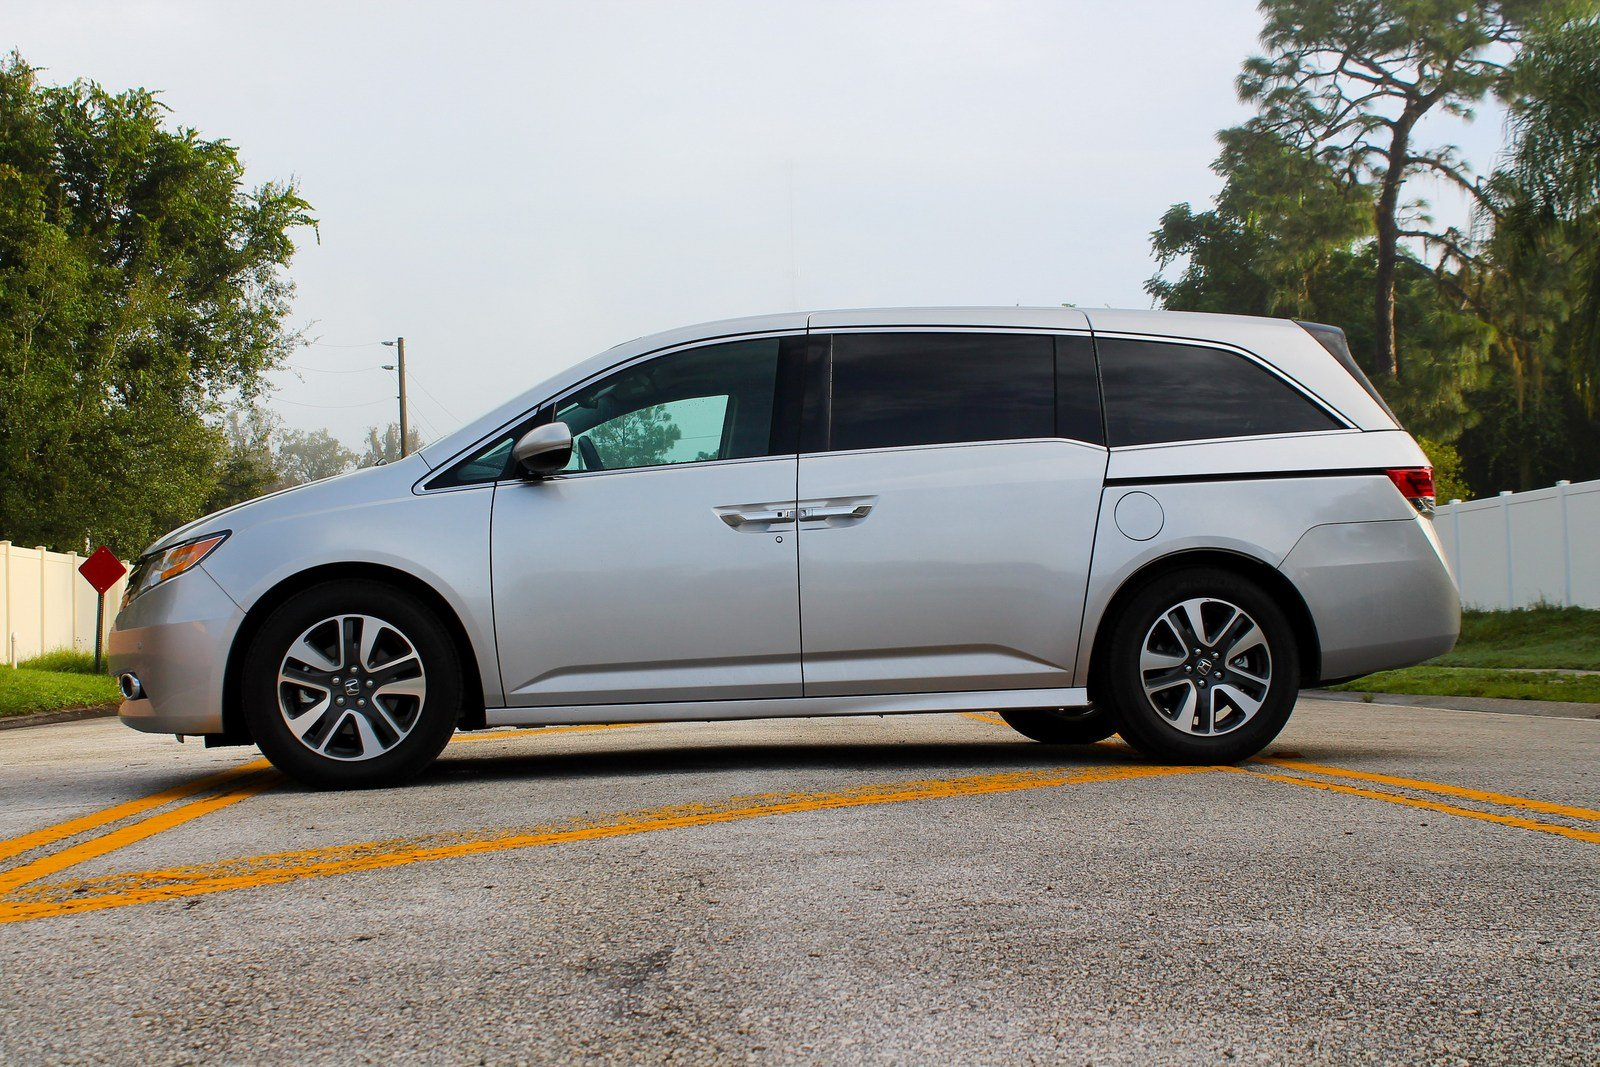 2015 honda odyssey touring elite driven picture 702396 car review top speed. Black Bedroom Furniture Sets. Home Design Ideas